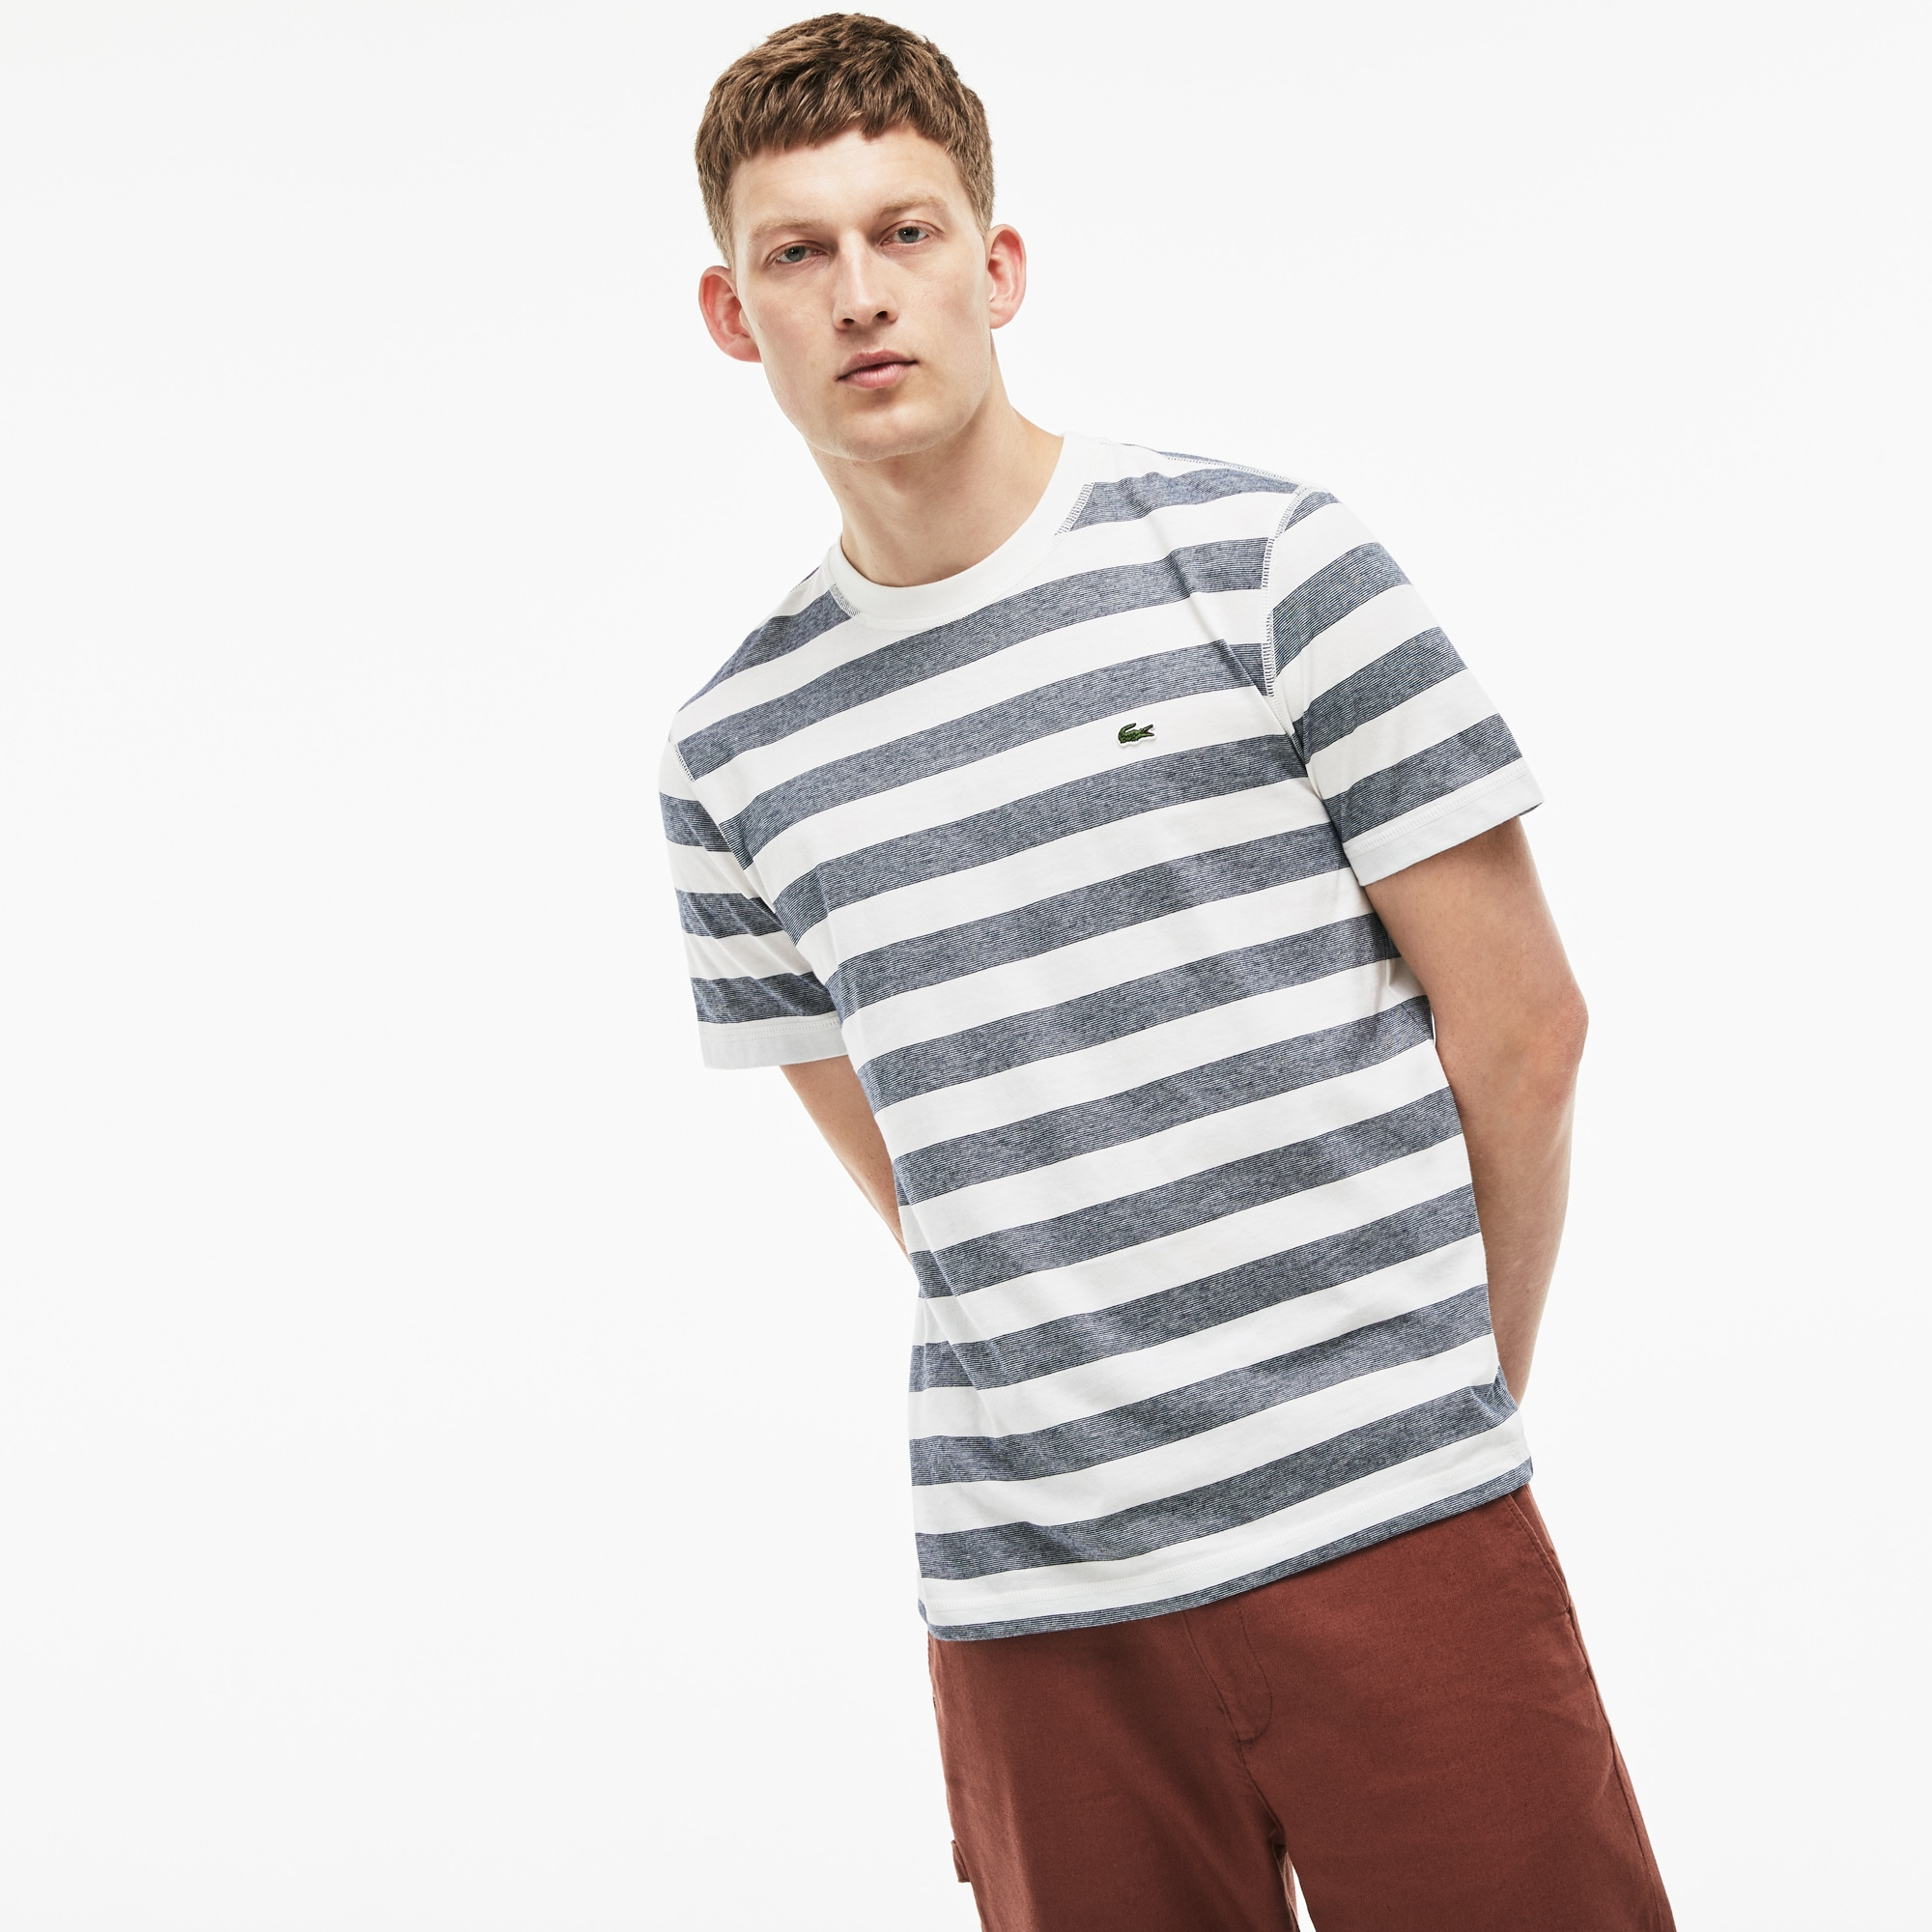 Men's Crew Neck Striped Cotton Jersey T-shirt